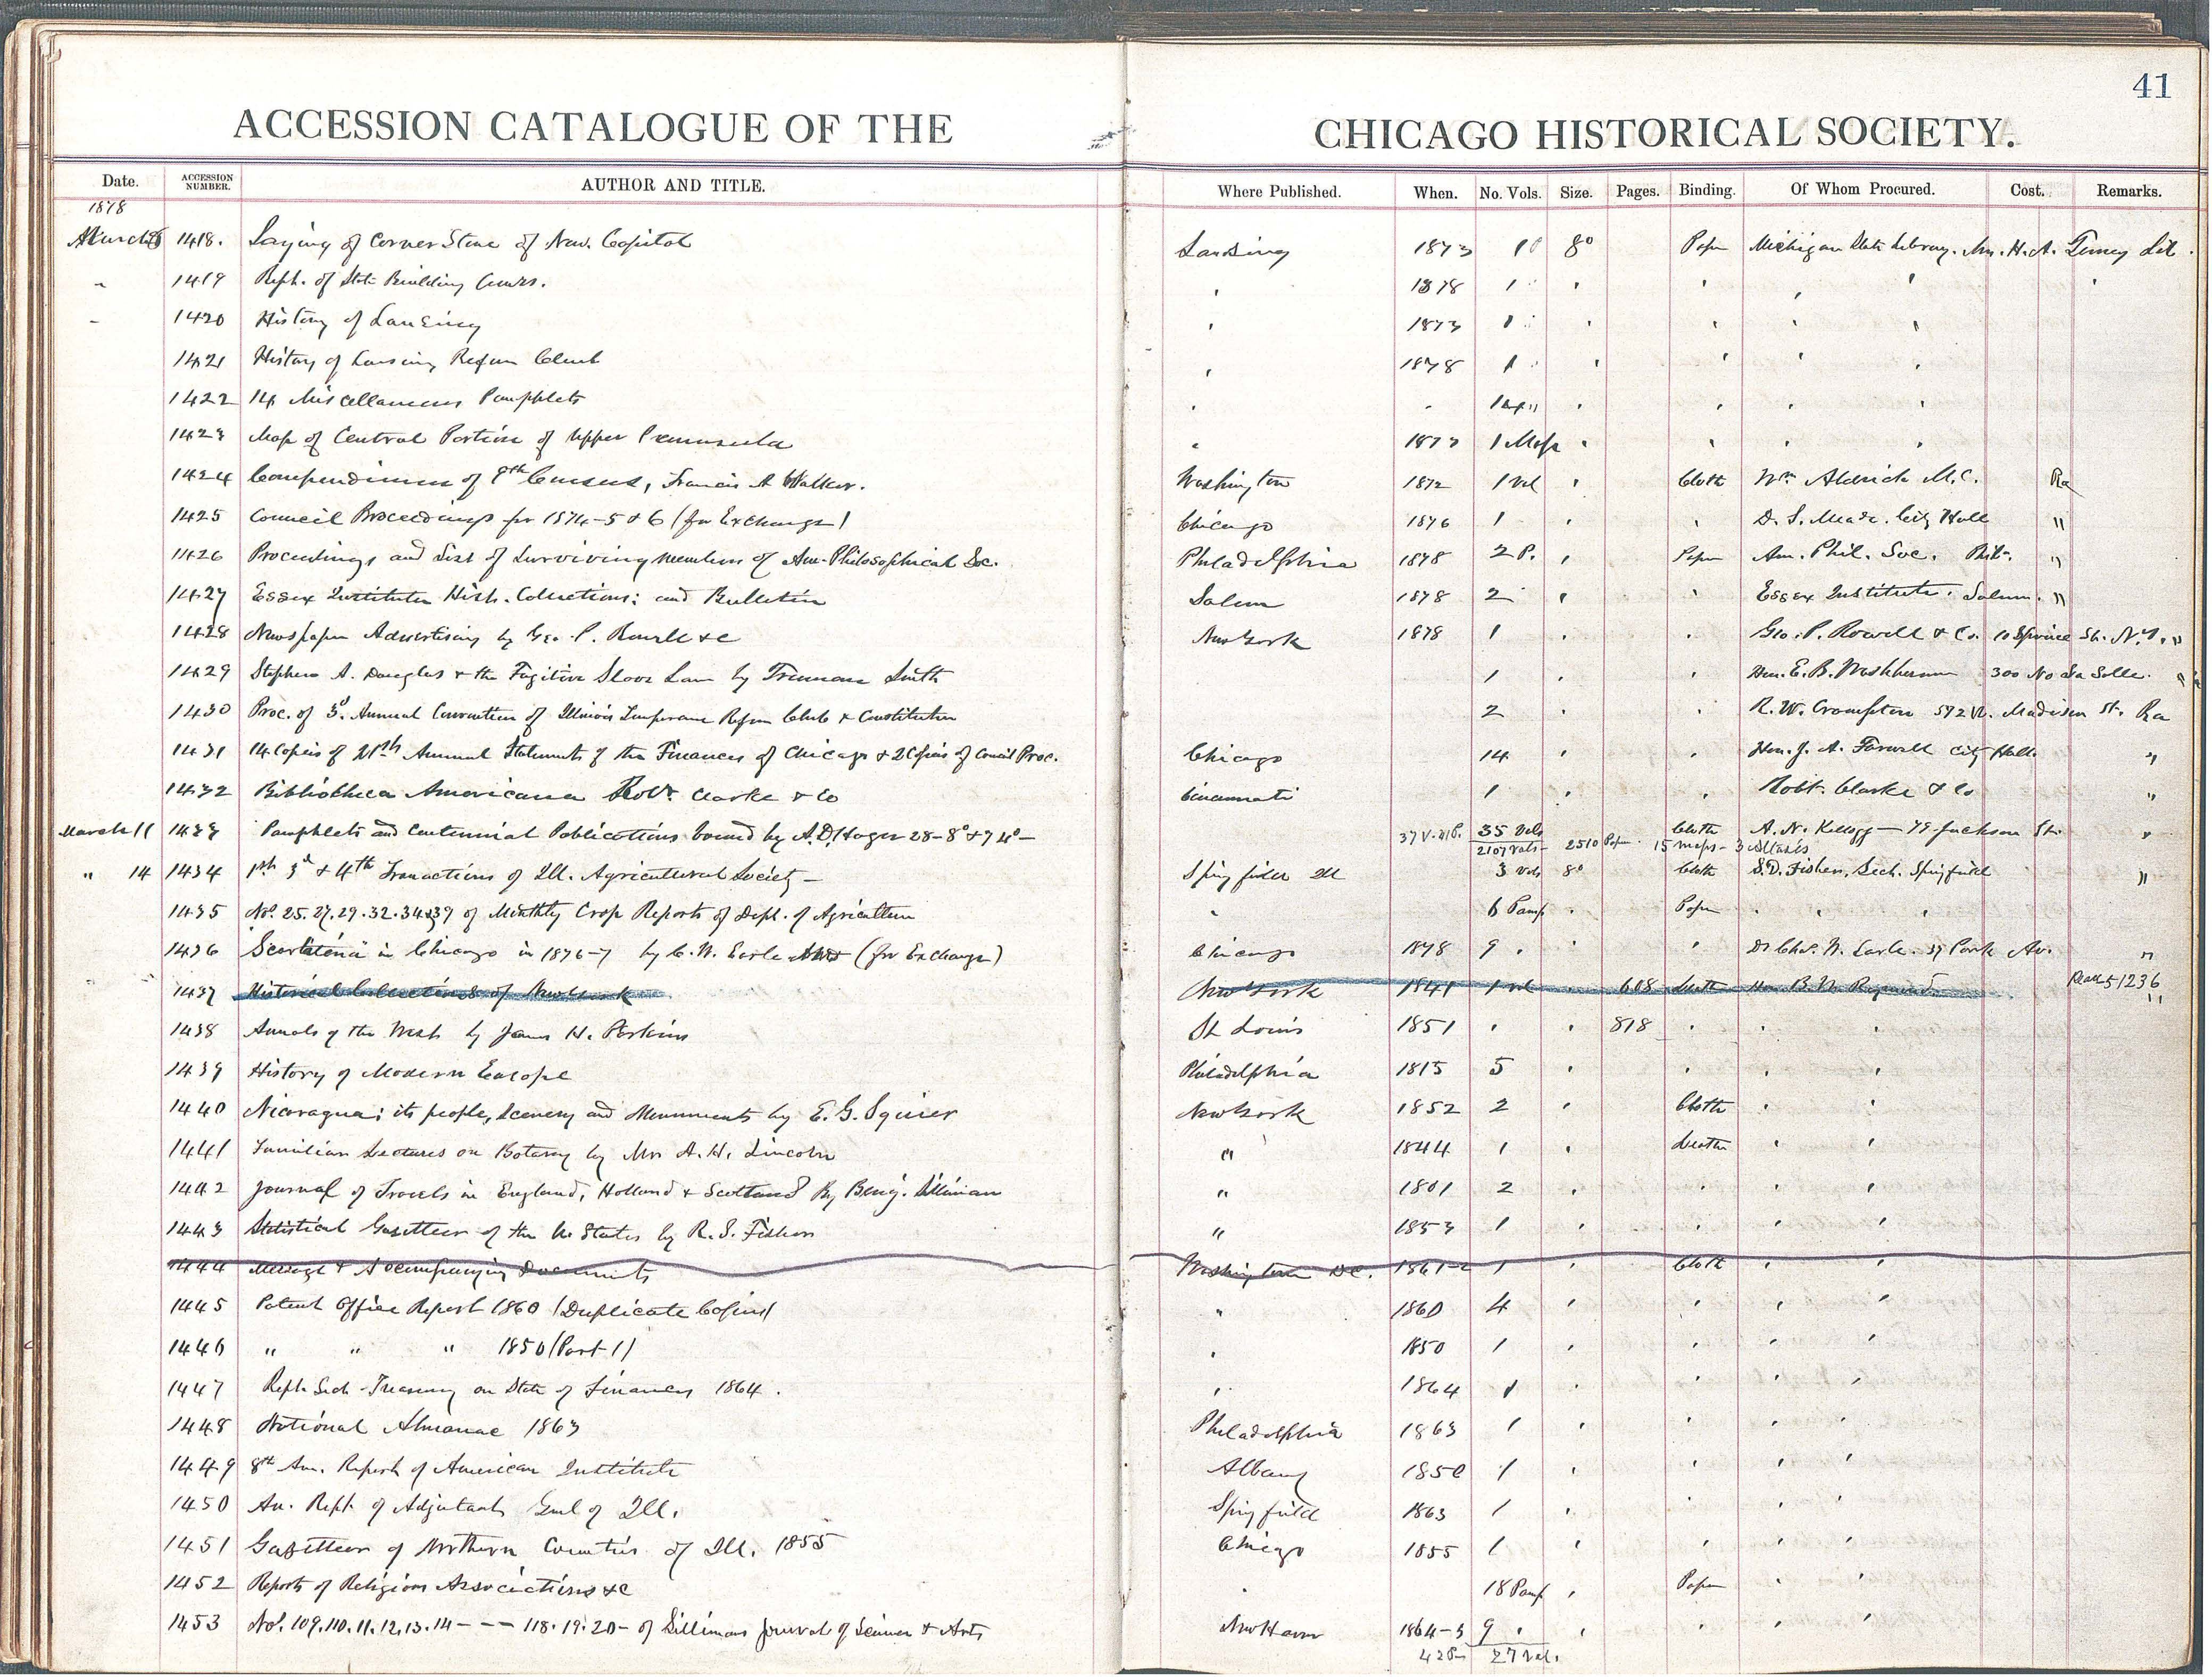 Chicago Historical Society Accession Ledger for March 11, 1878